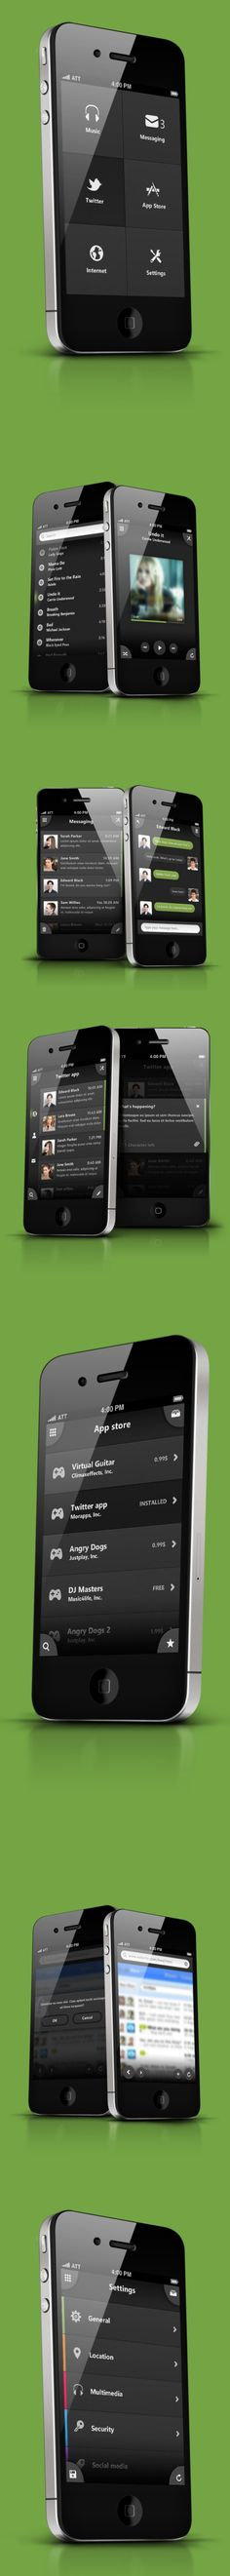 Phone UI Retina - Apocalipse by Ismail MESBAH